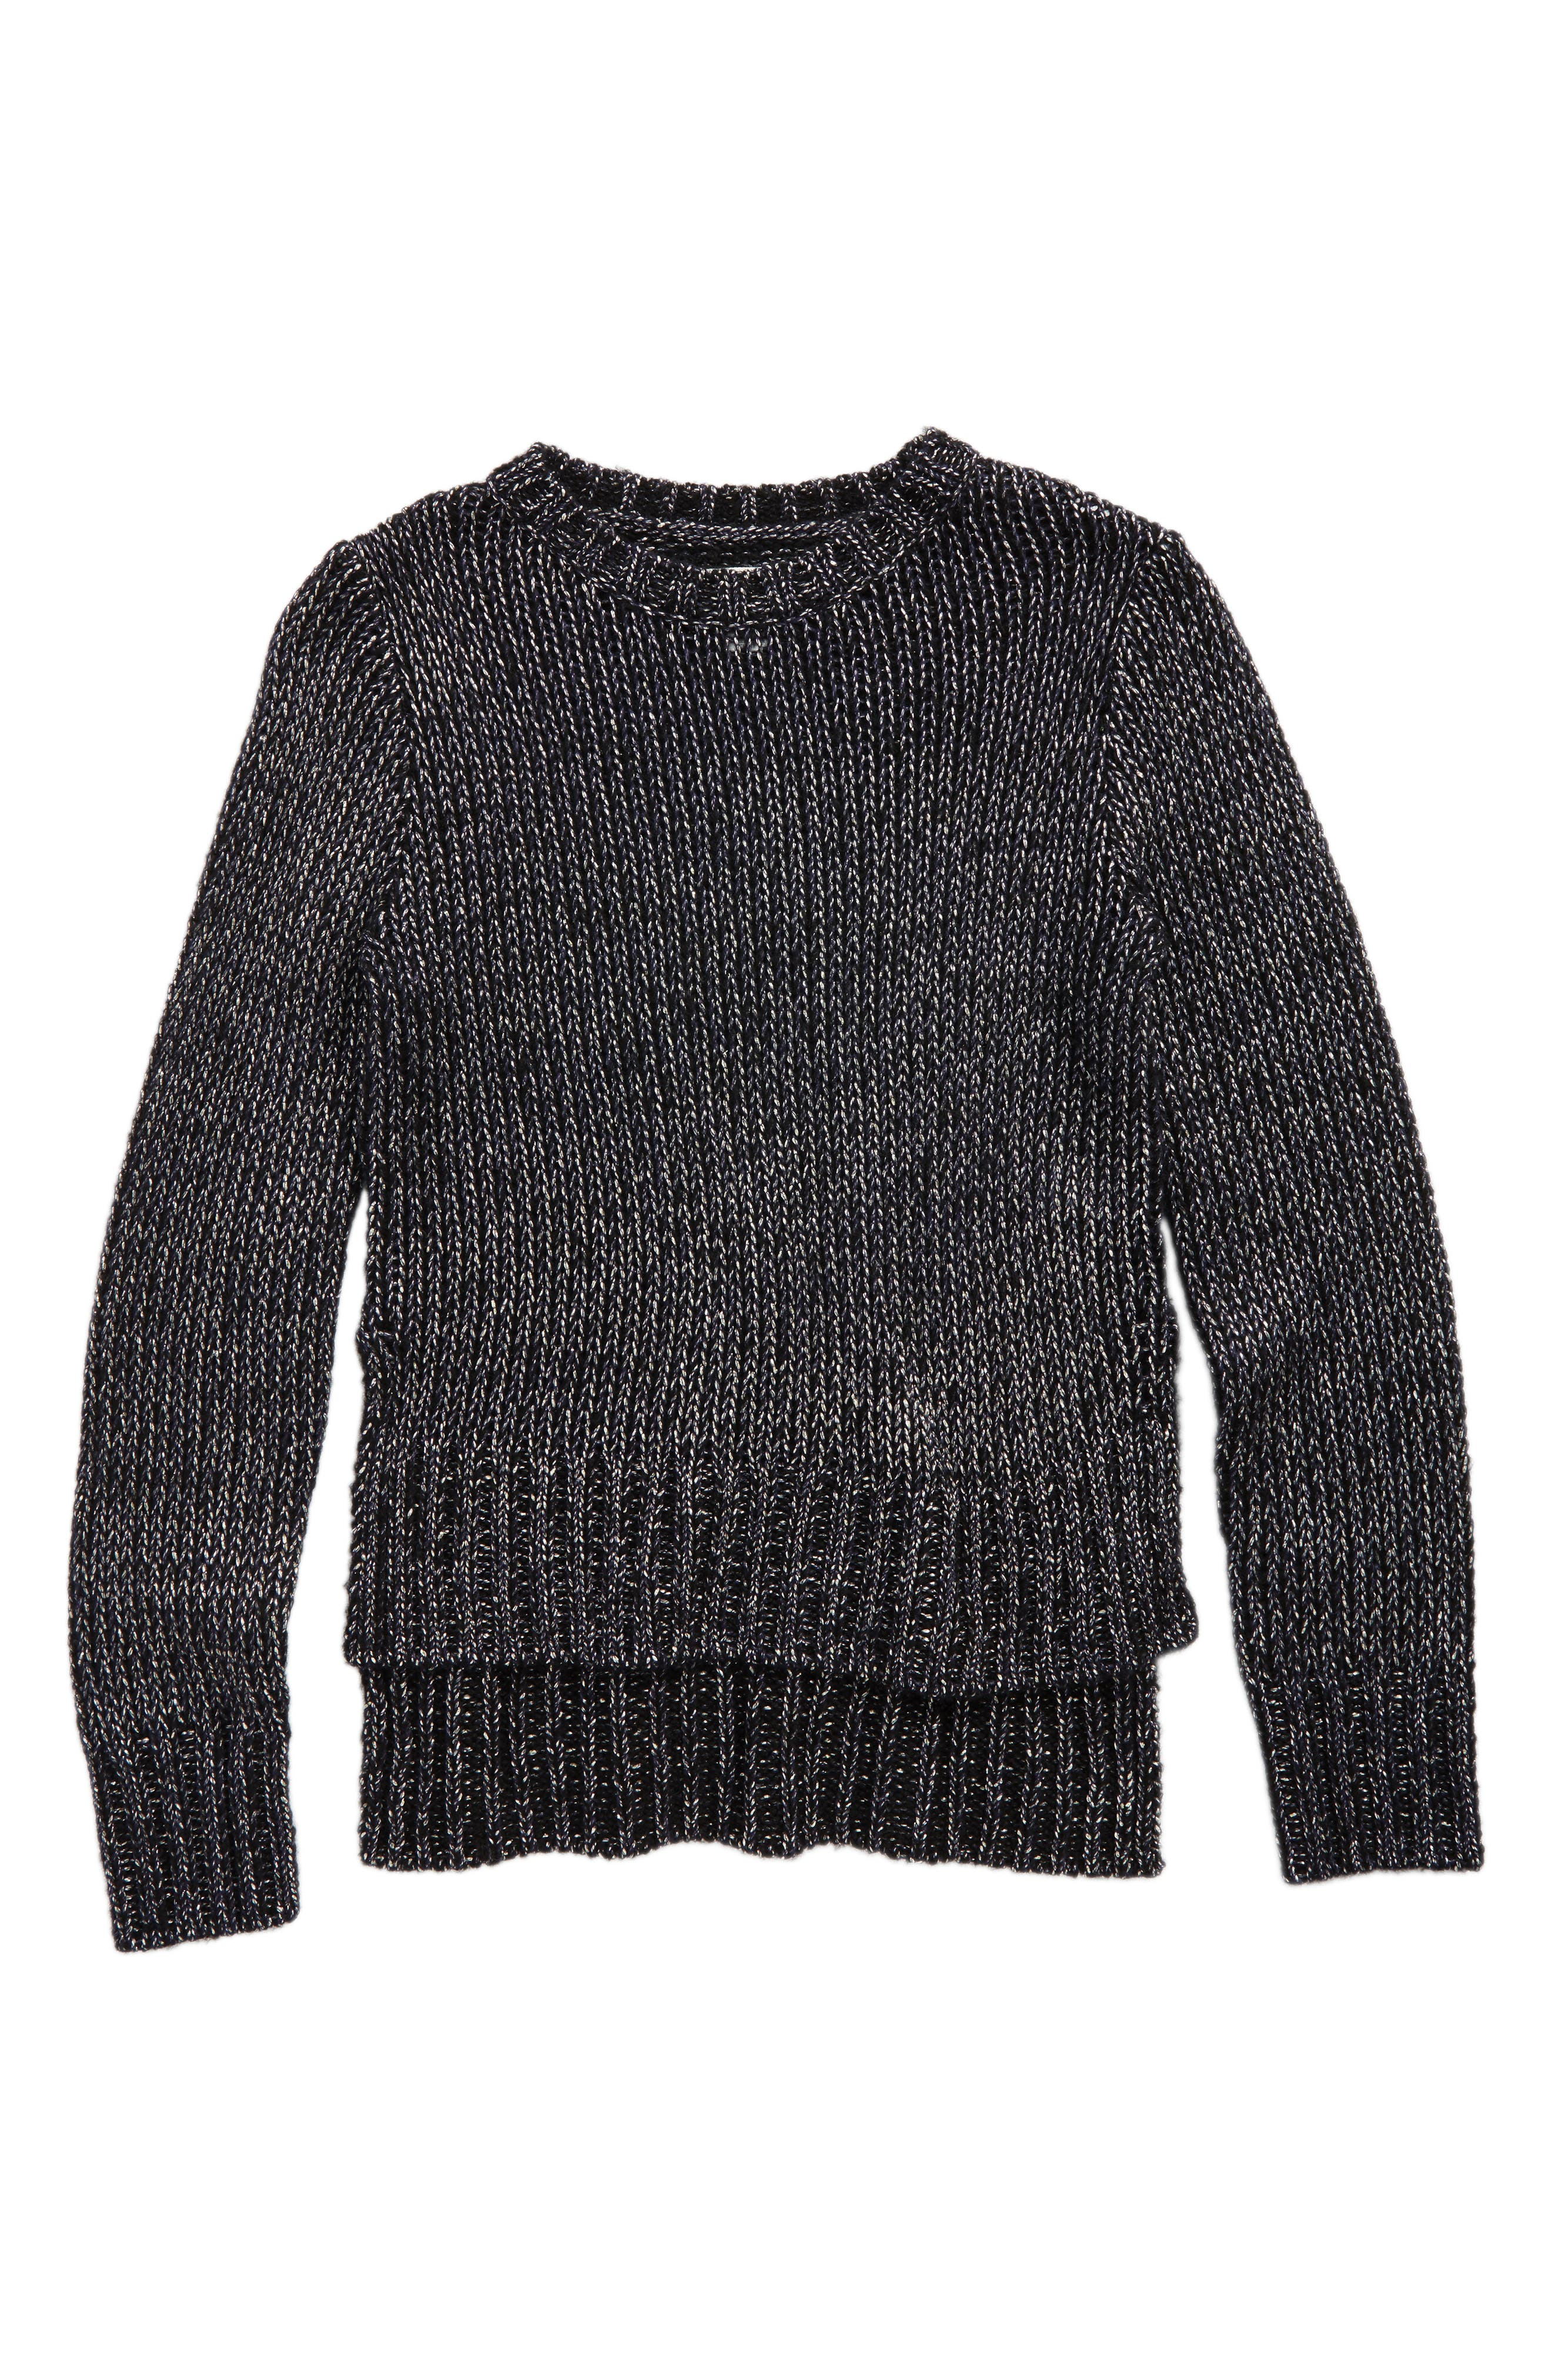 Metallic Sweater,                             Main thumbnail 1, color,                             001